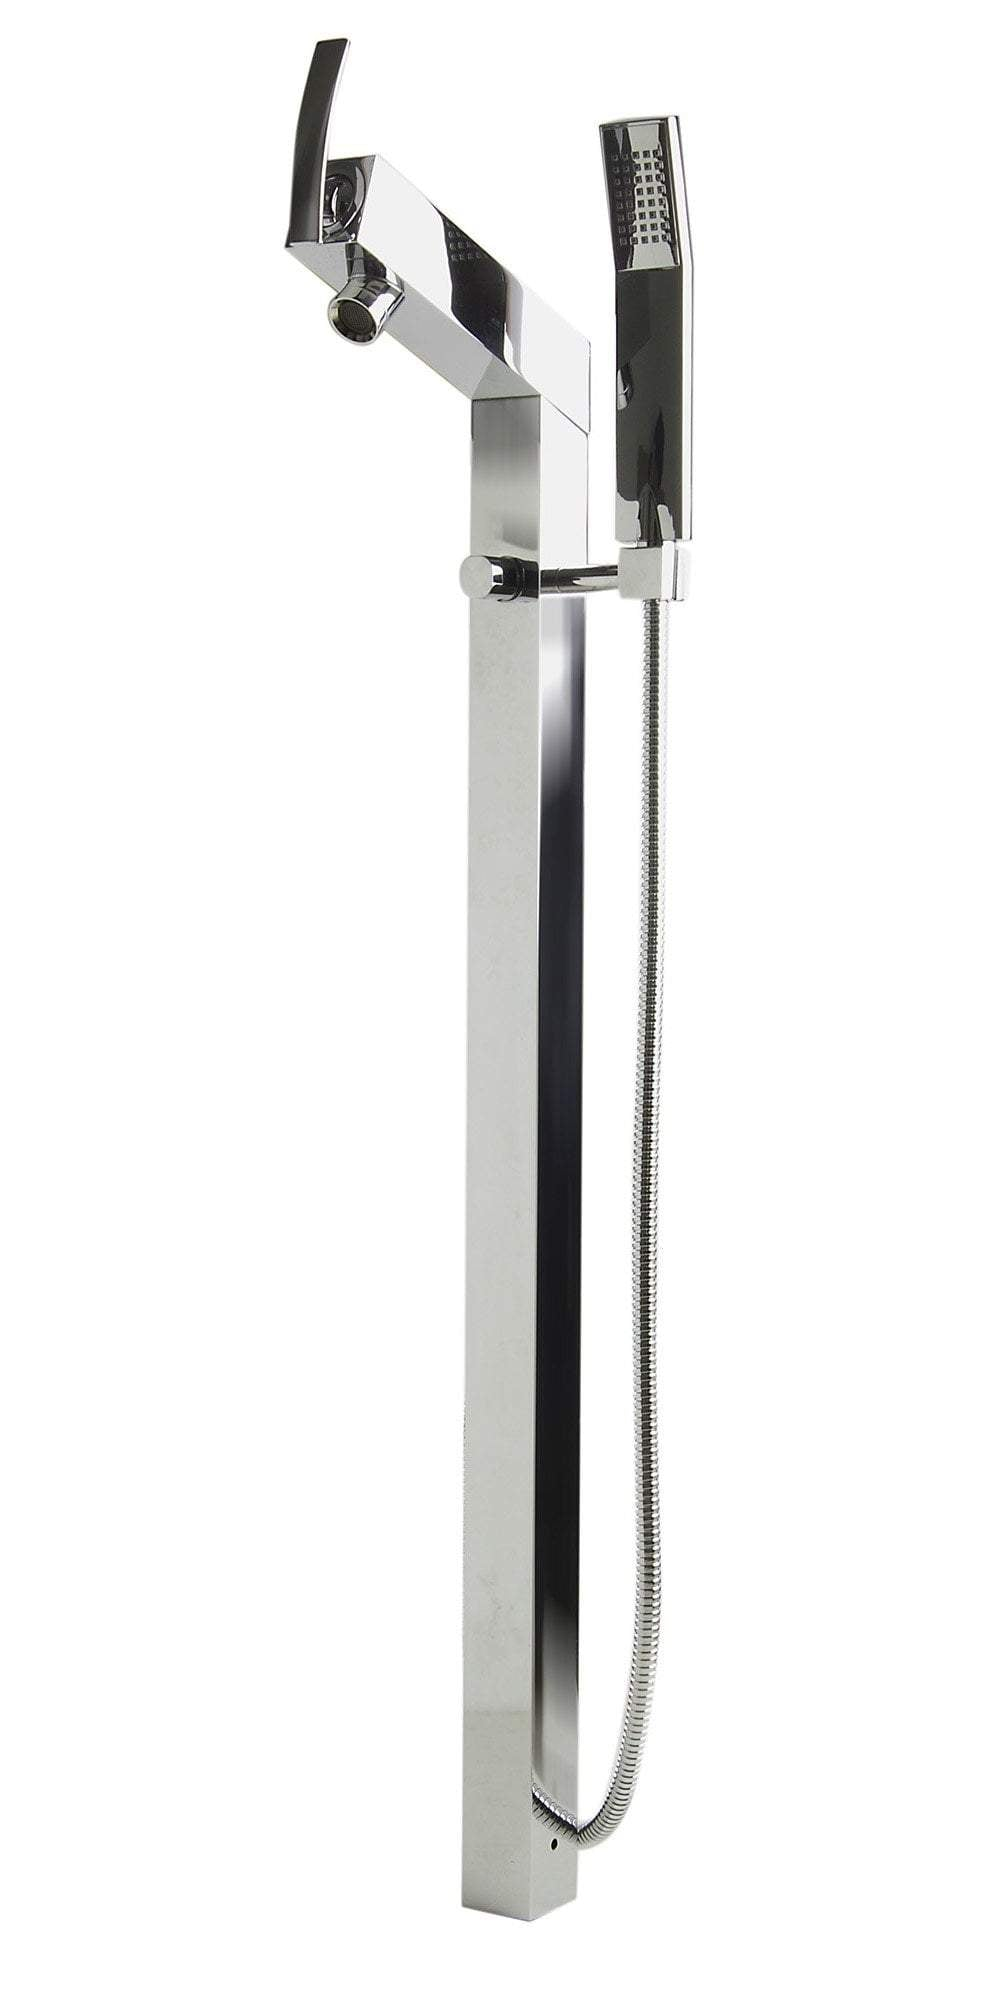 ALFI brand AB2728-PC Polished Chrome Floor Mounted Tub Filler + Mixer /w additional Hand Held Shower Head